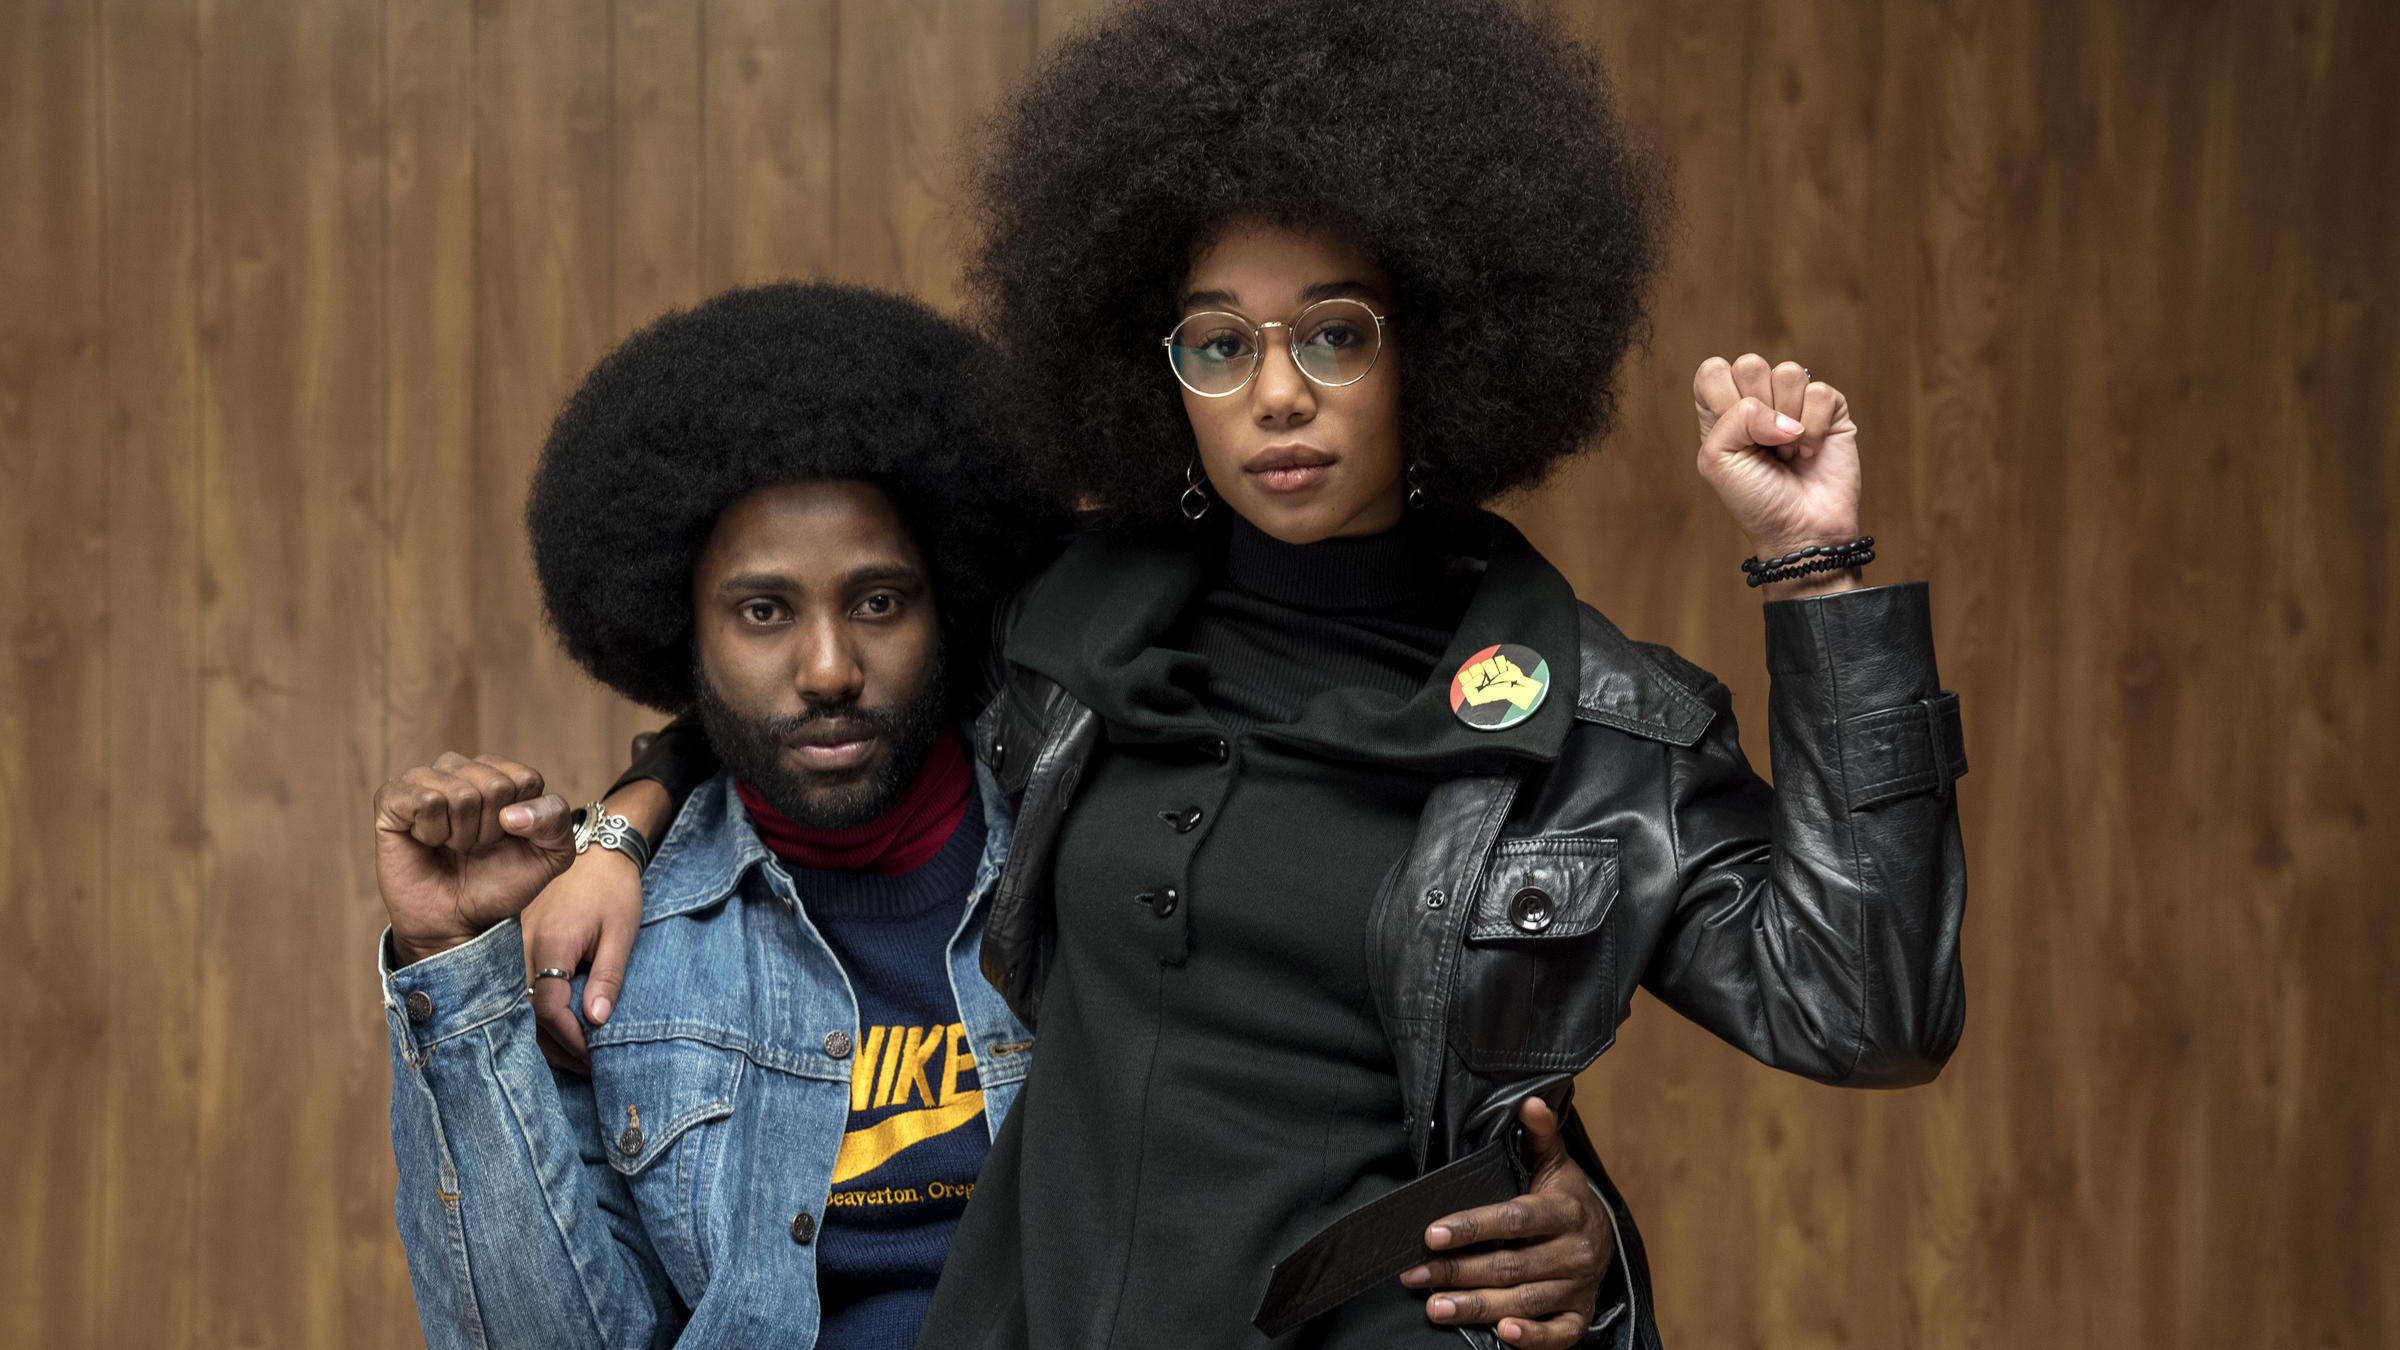 Ron and Patrice strike power poses in Spike Lee's BlacKkKlansman